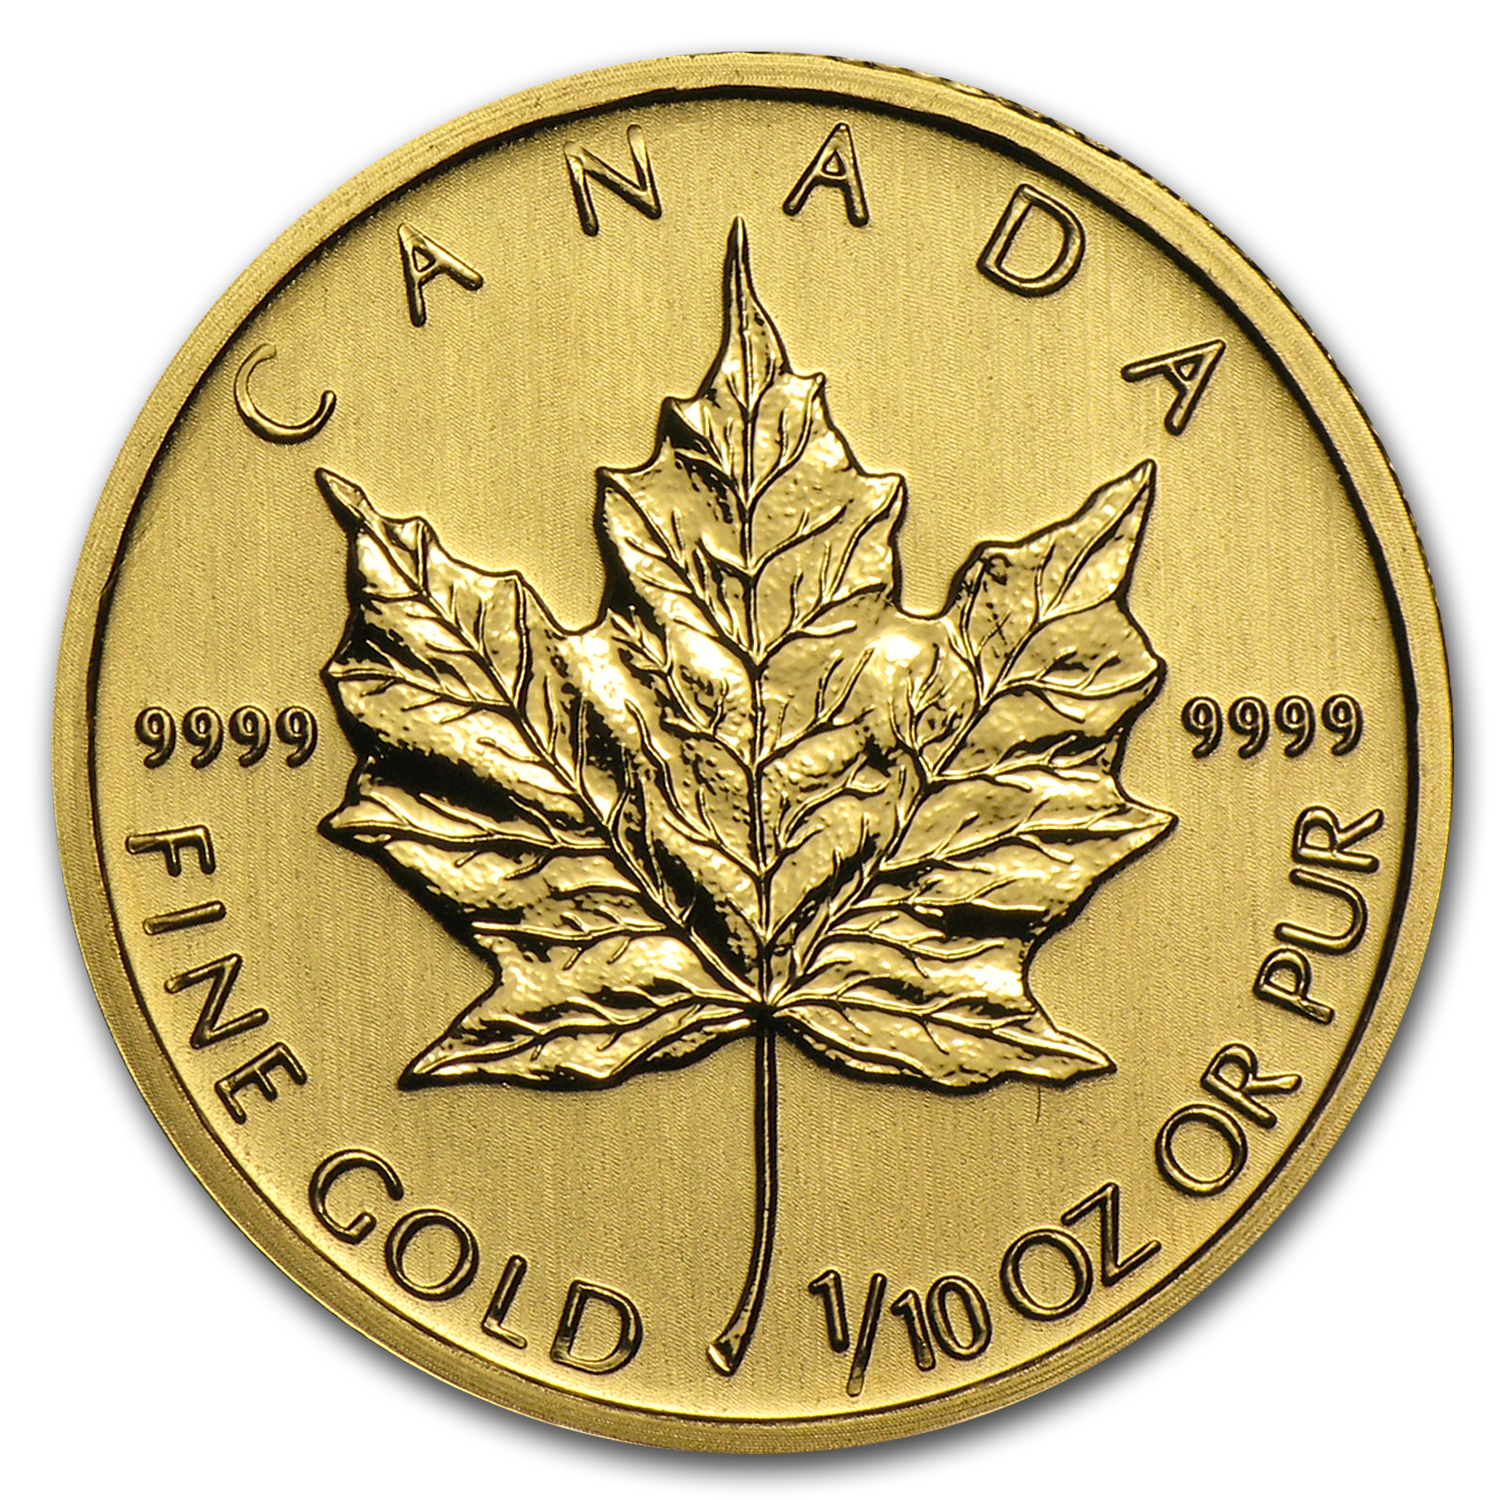 2012 Canada 1/10 oz Gold Maple Leaf BU